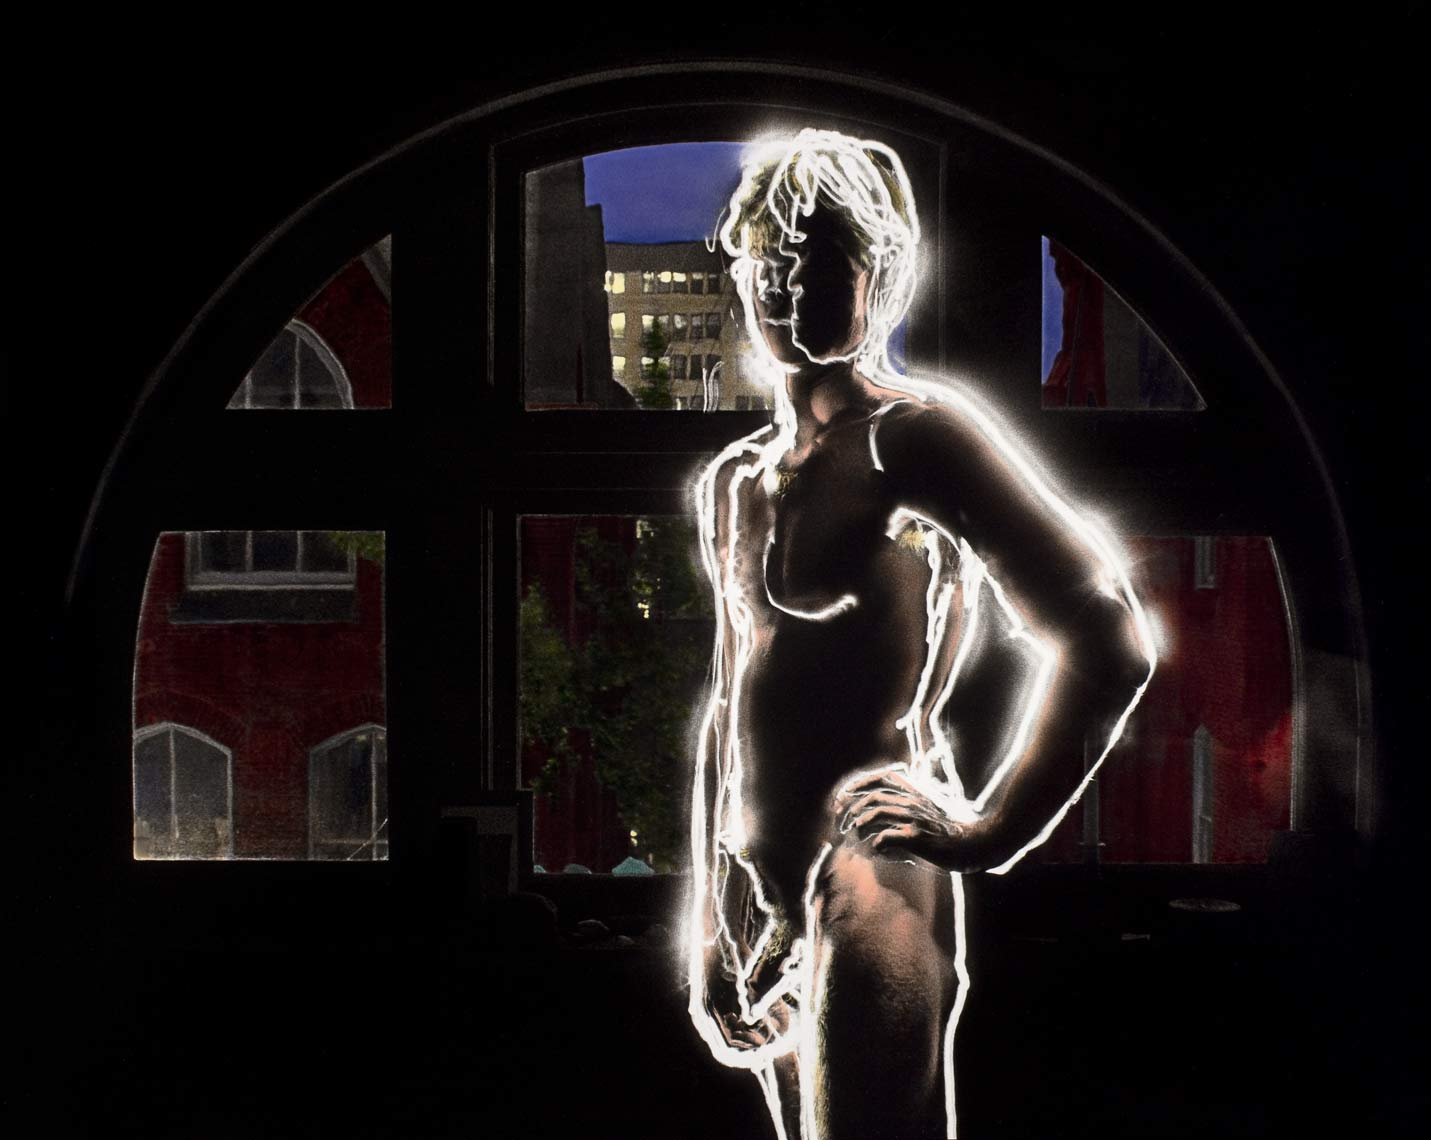 David Lebe; Wayne At The Window, 1980, male nude, light drawing, hand colored photograph